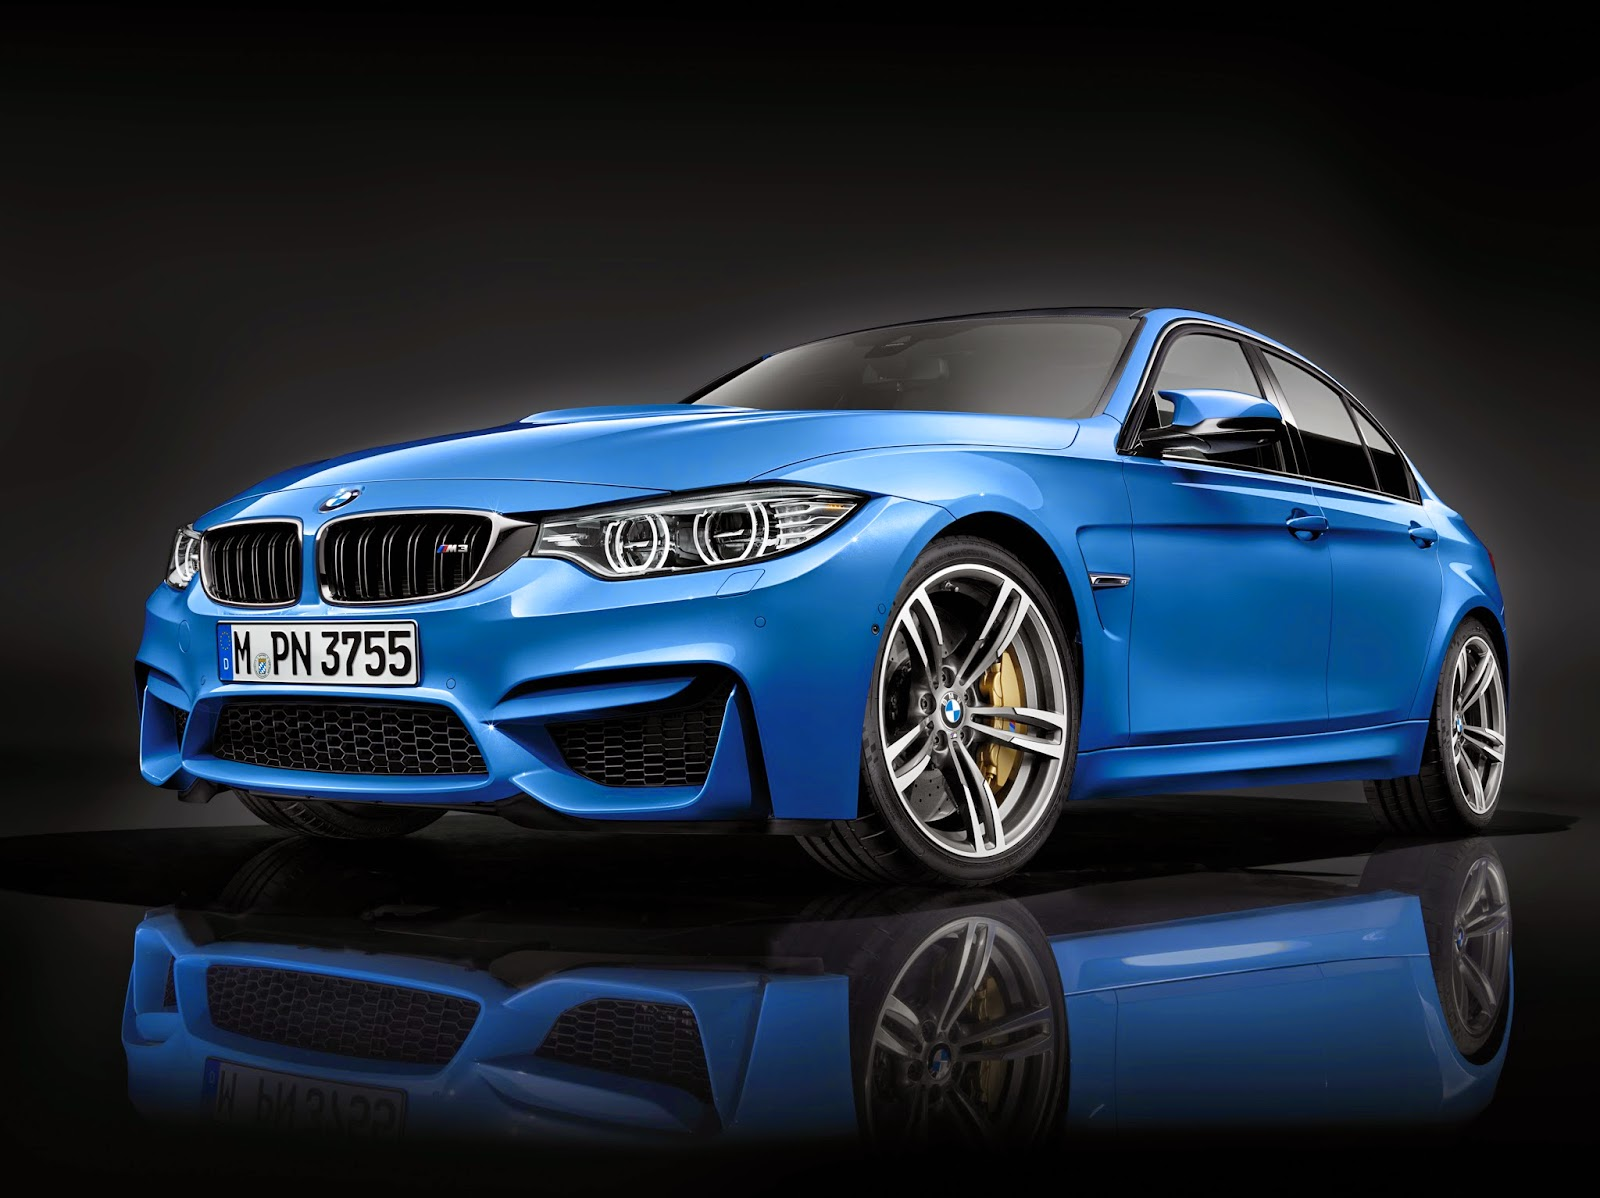 2016 BMW M4 GTS Release Date And Price